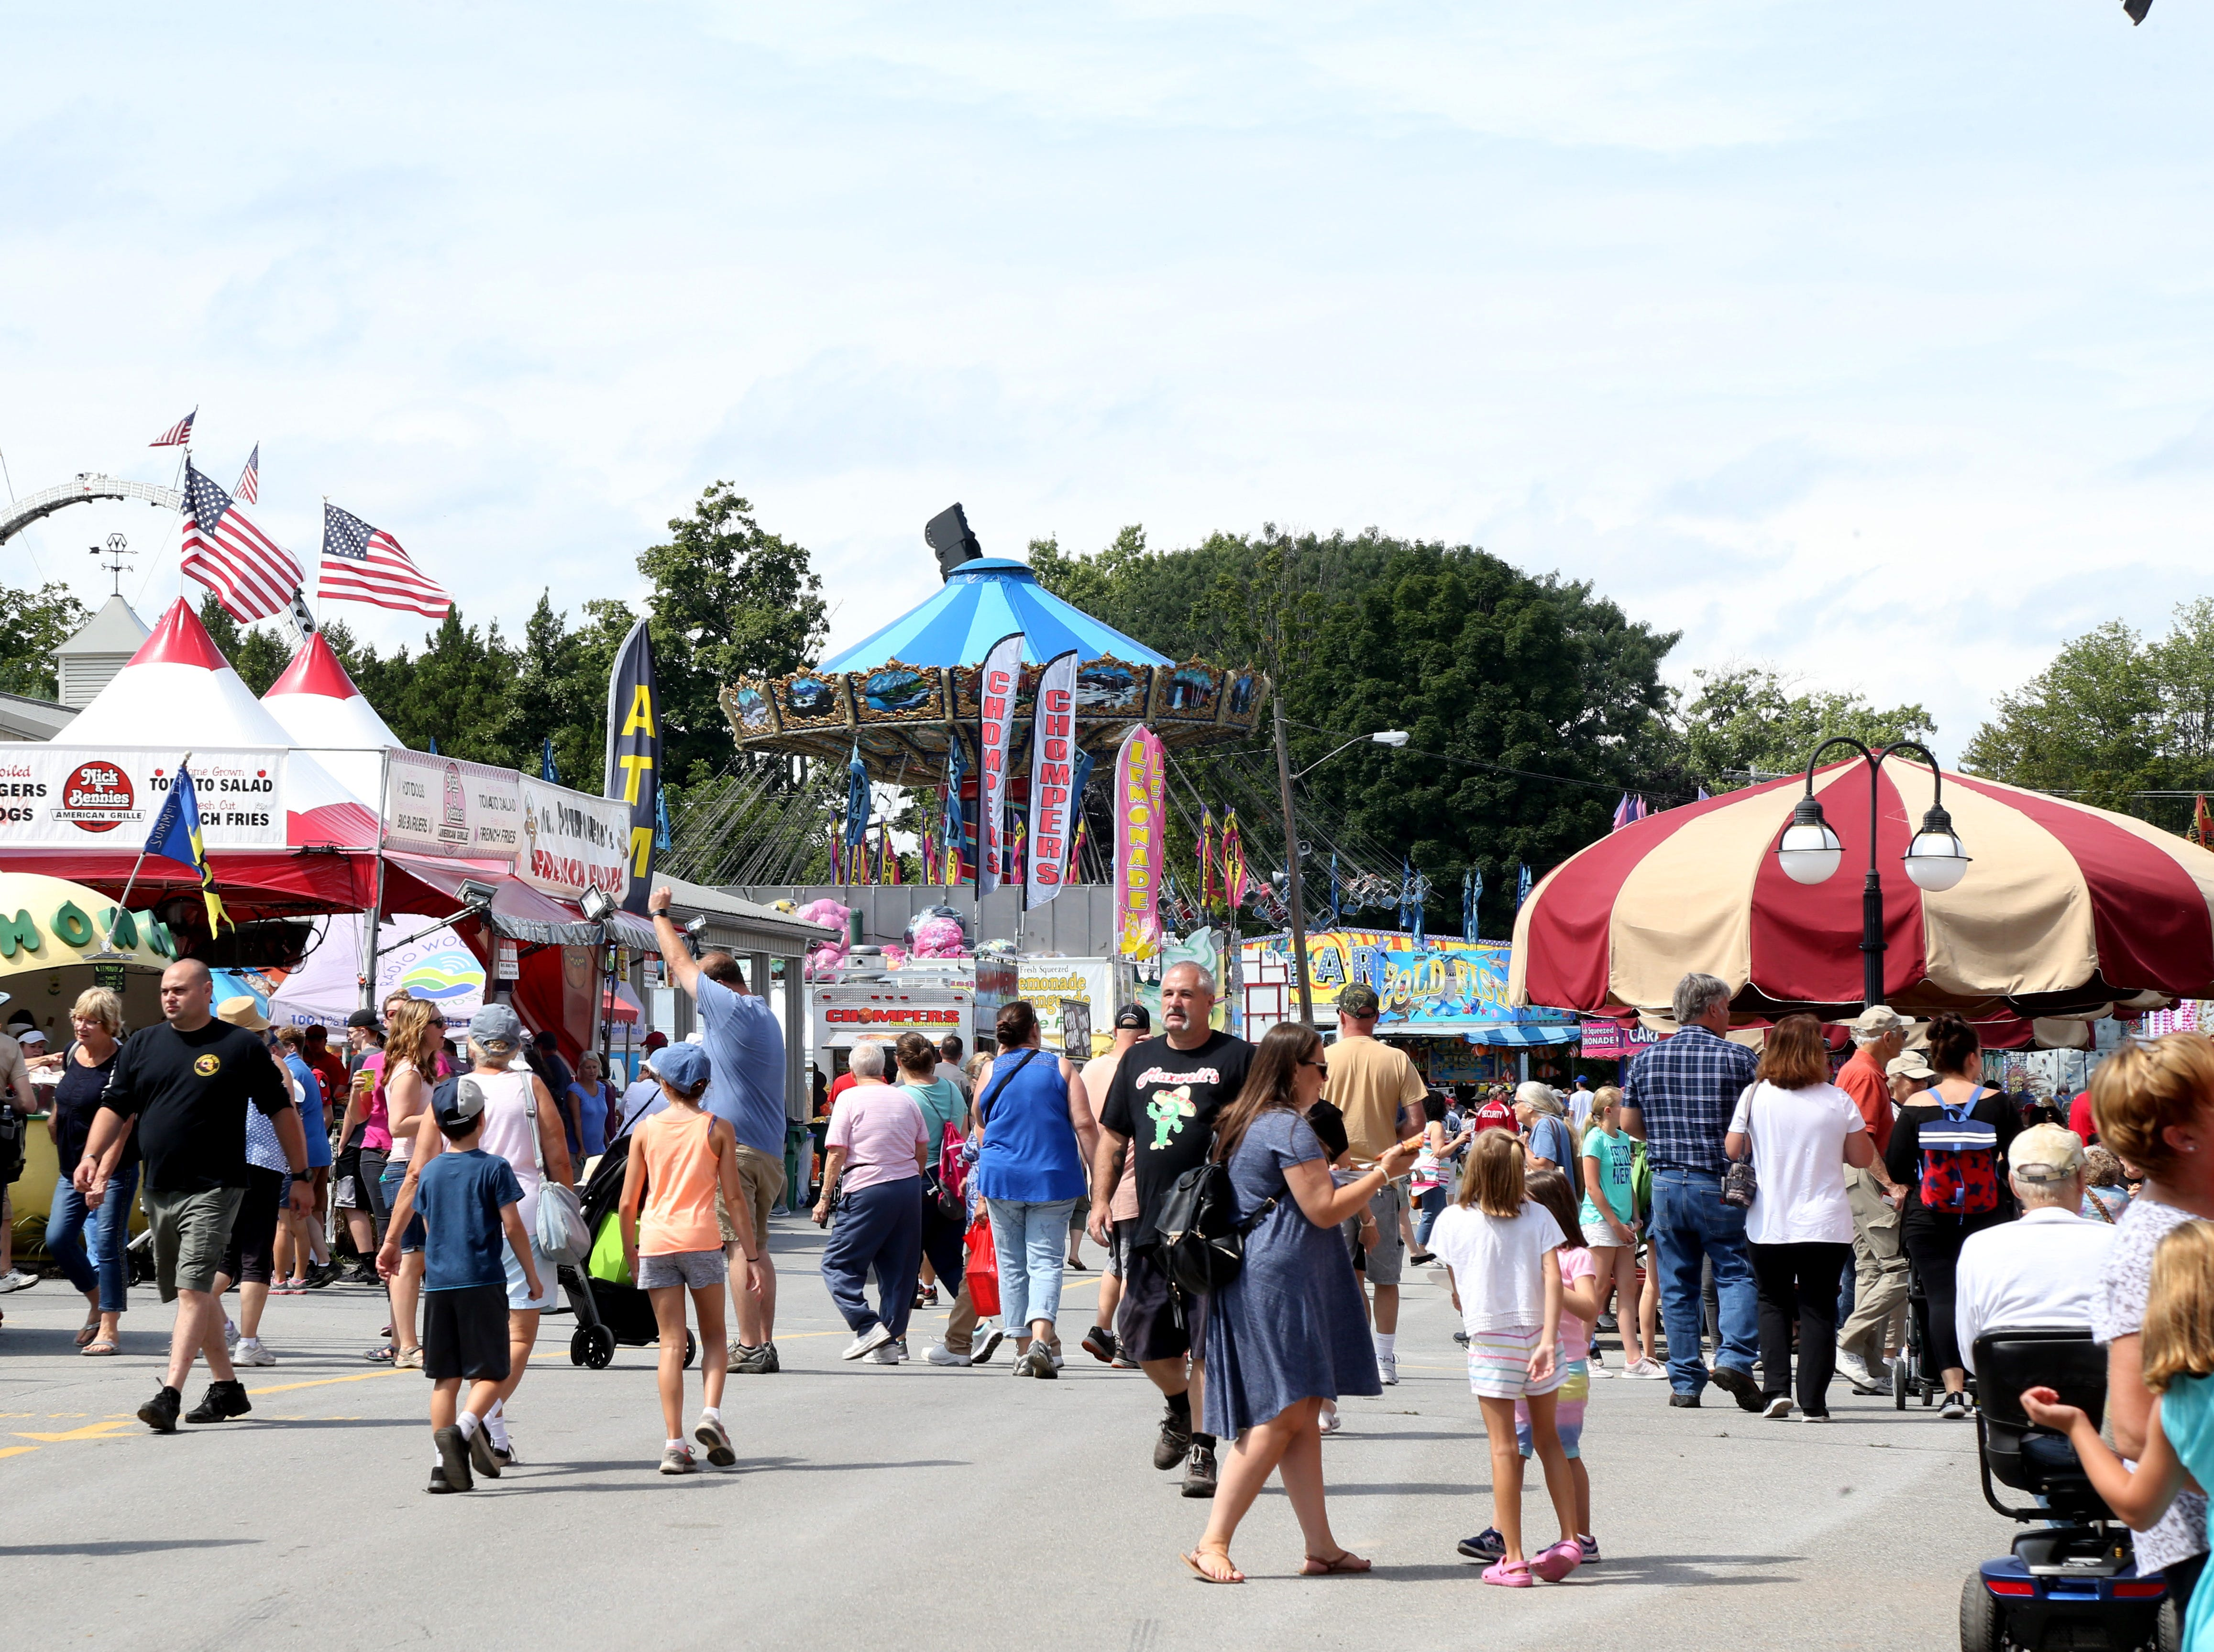 Opening day at the Dutchess County Fair in Rhinebeck on August 21 2018.